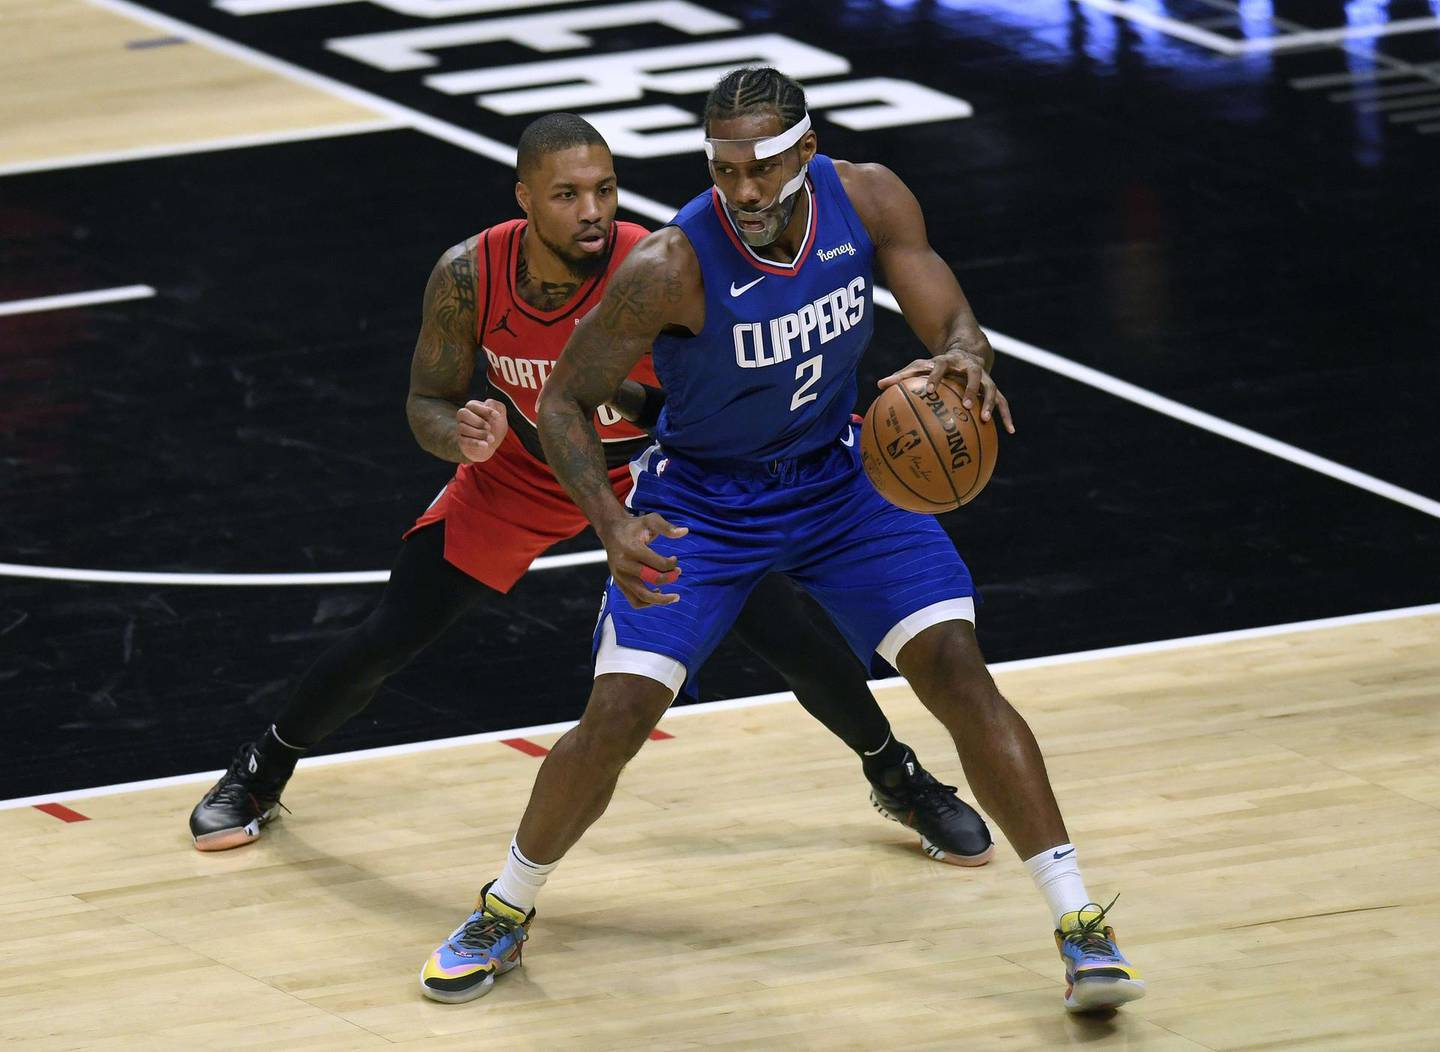 LOS ANGELES, CALIFORNIA - DECEMBER 30: Damian Lillard #0 of the Portland Trail Blazers guards Kawhi Leonard #2 of the LA Clippers during the first half at Staples Center on December 30, 2020 in Los Angeles, California. NOTE TO USER: User expressly acknowledges and agrees that, by downloading and/or using this photograph, user is consenting to the terms and conditions of the Getty Images License Agreement.   Harry How/Getty Images/AFP == FOR NEWSPAPERS, INTERNET, TELCOS & TELEVISION USE ONLY ==